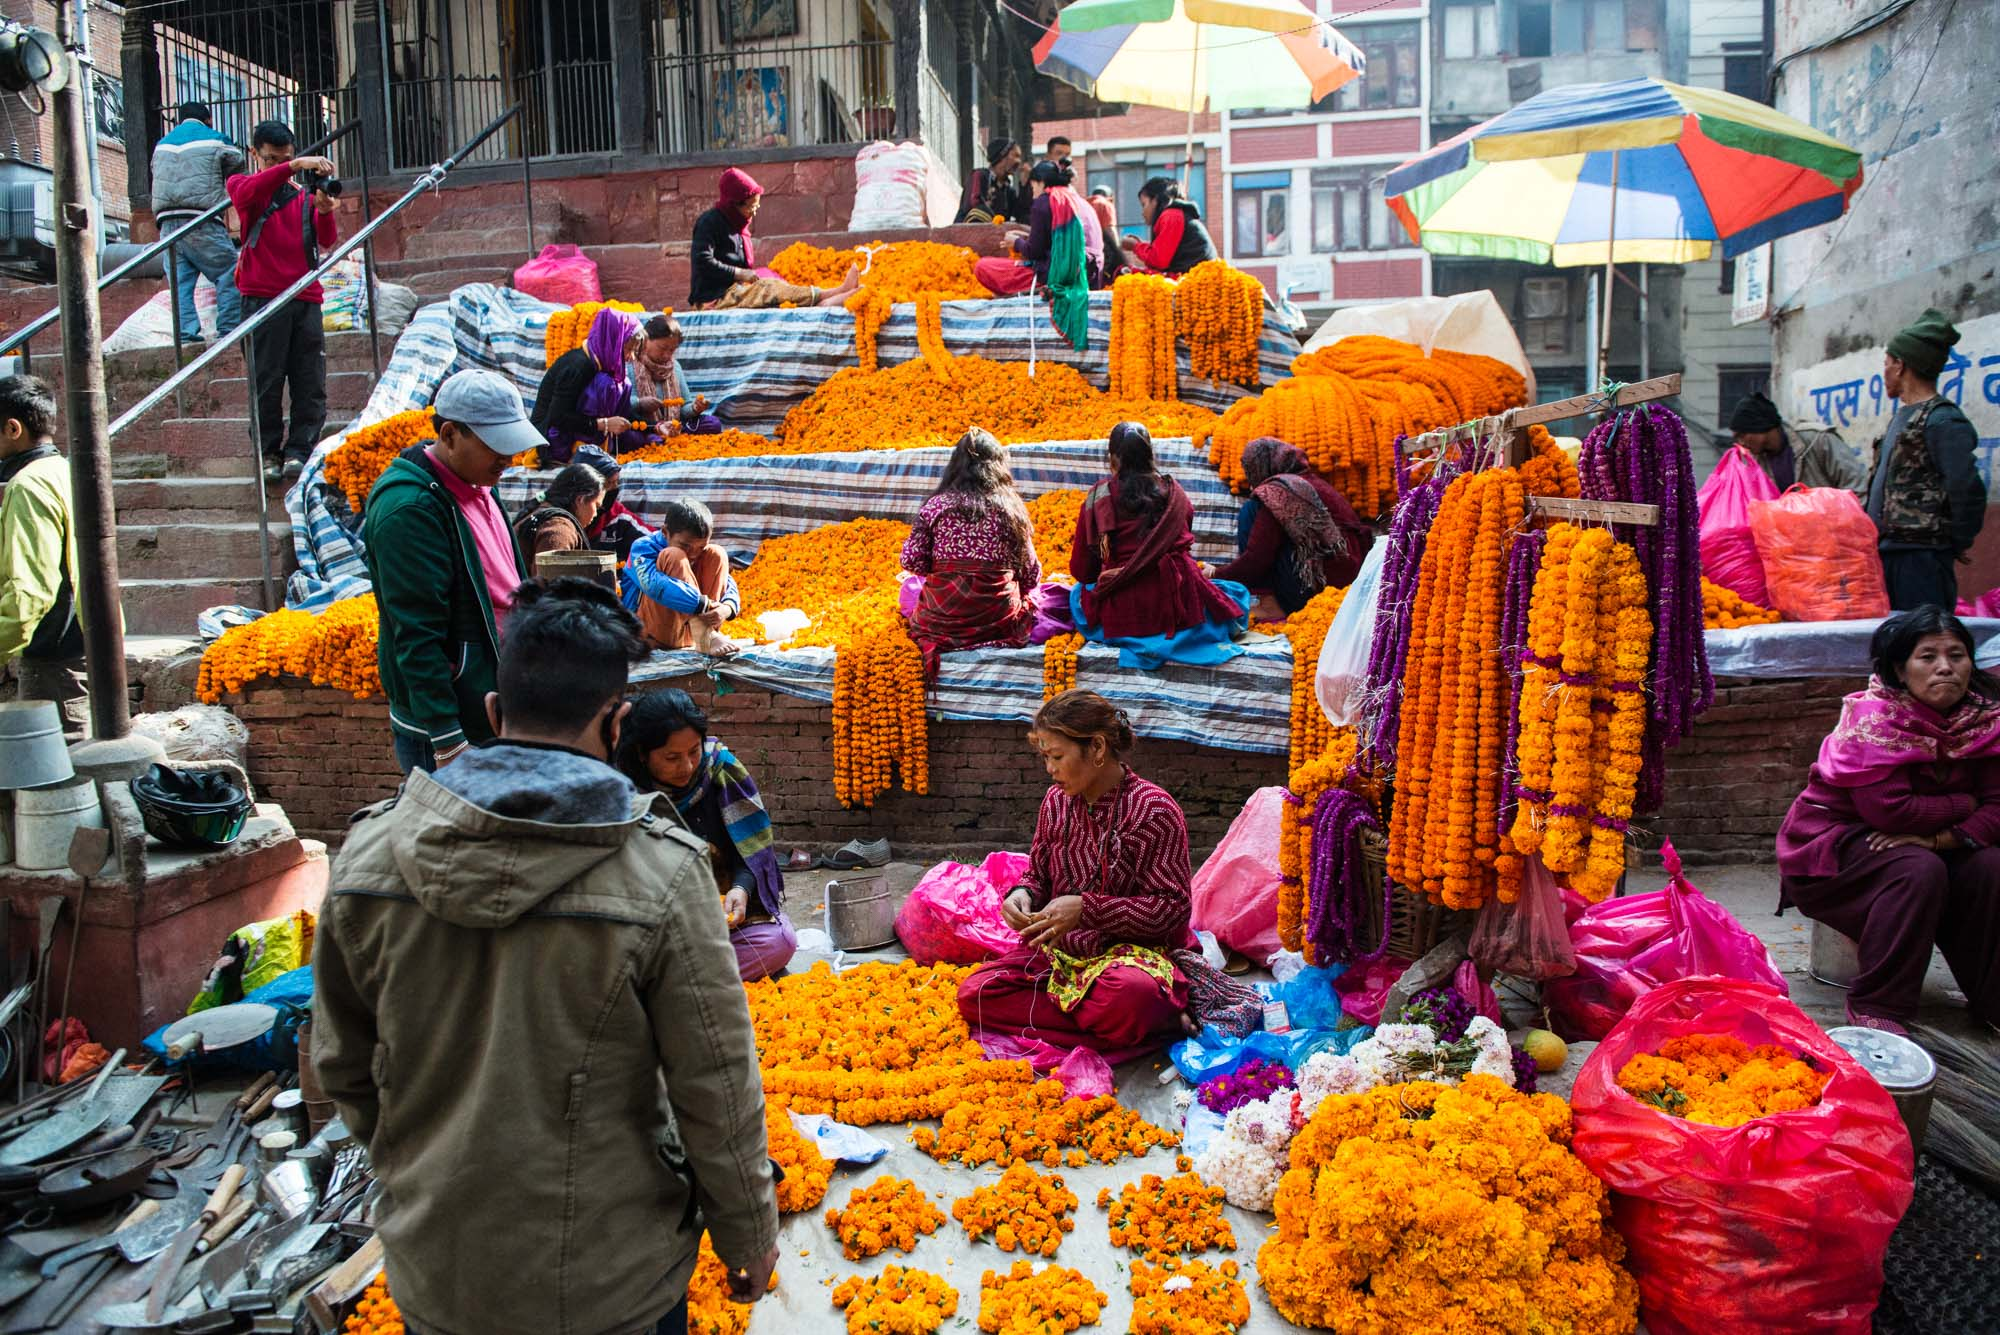 Kathmandu is at it's most colorful with the lead up to Tihar, the festival of lights-marigold garlands are available everywhere for worship and celebration. class=